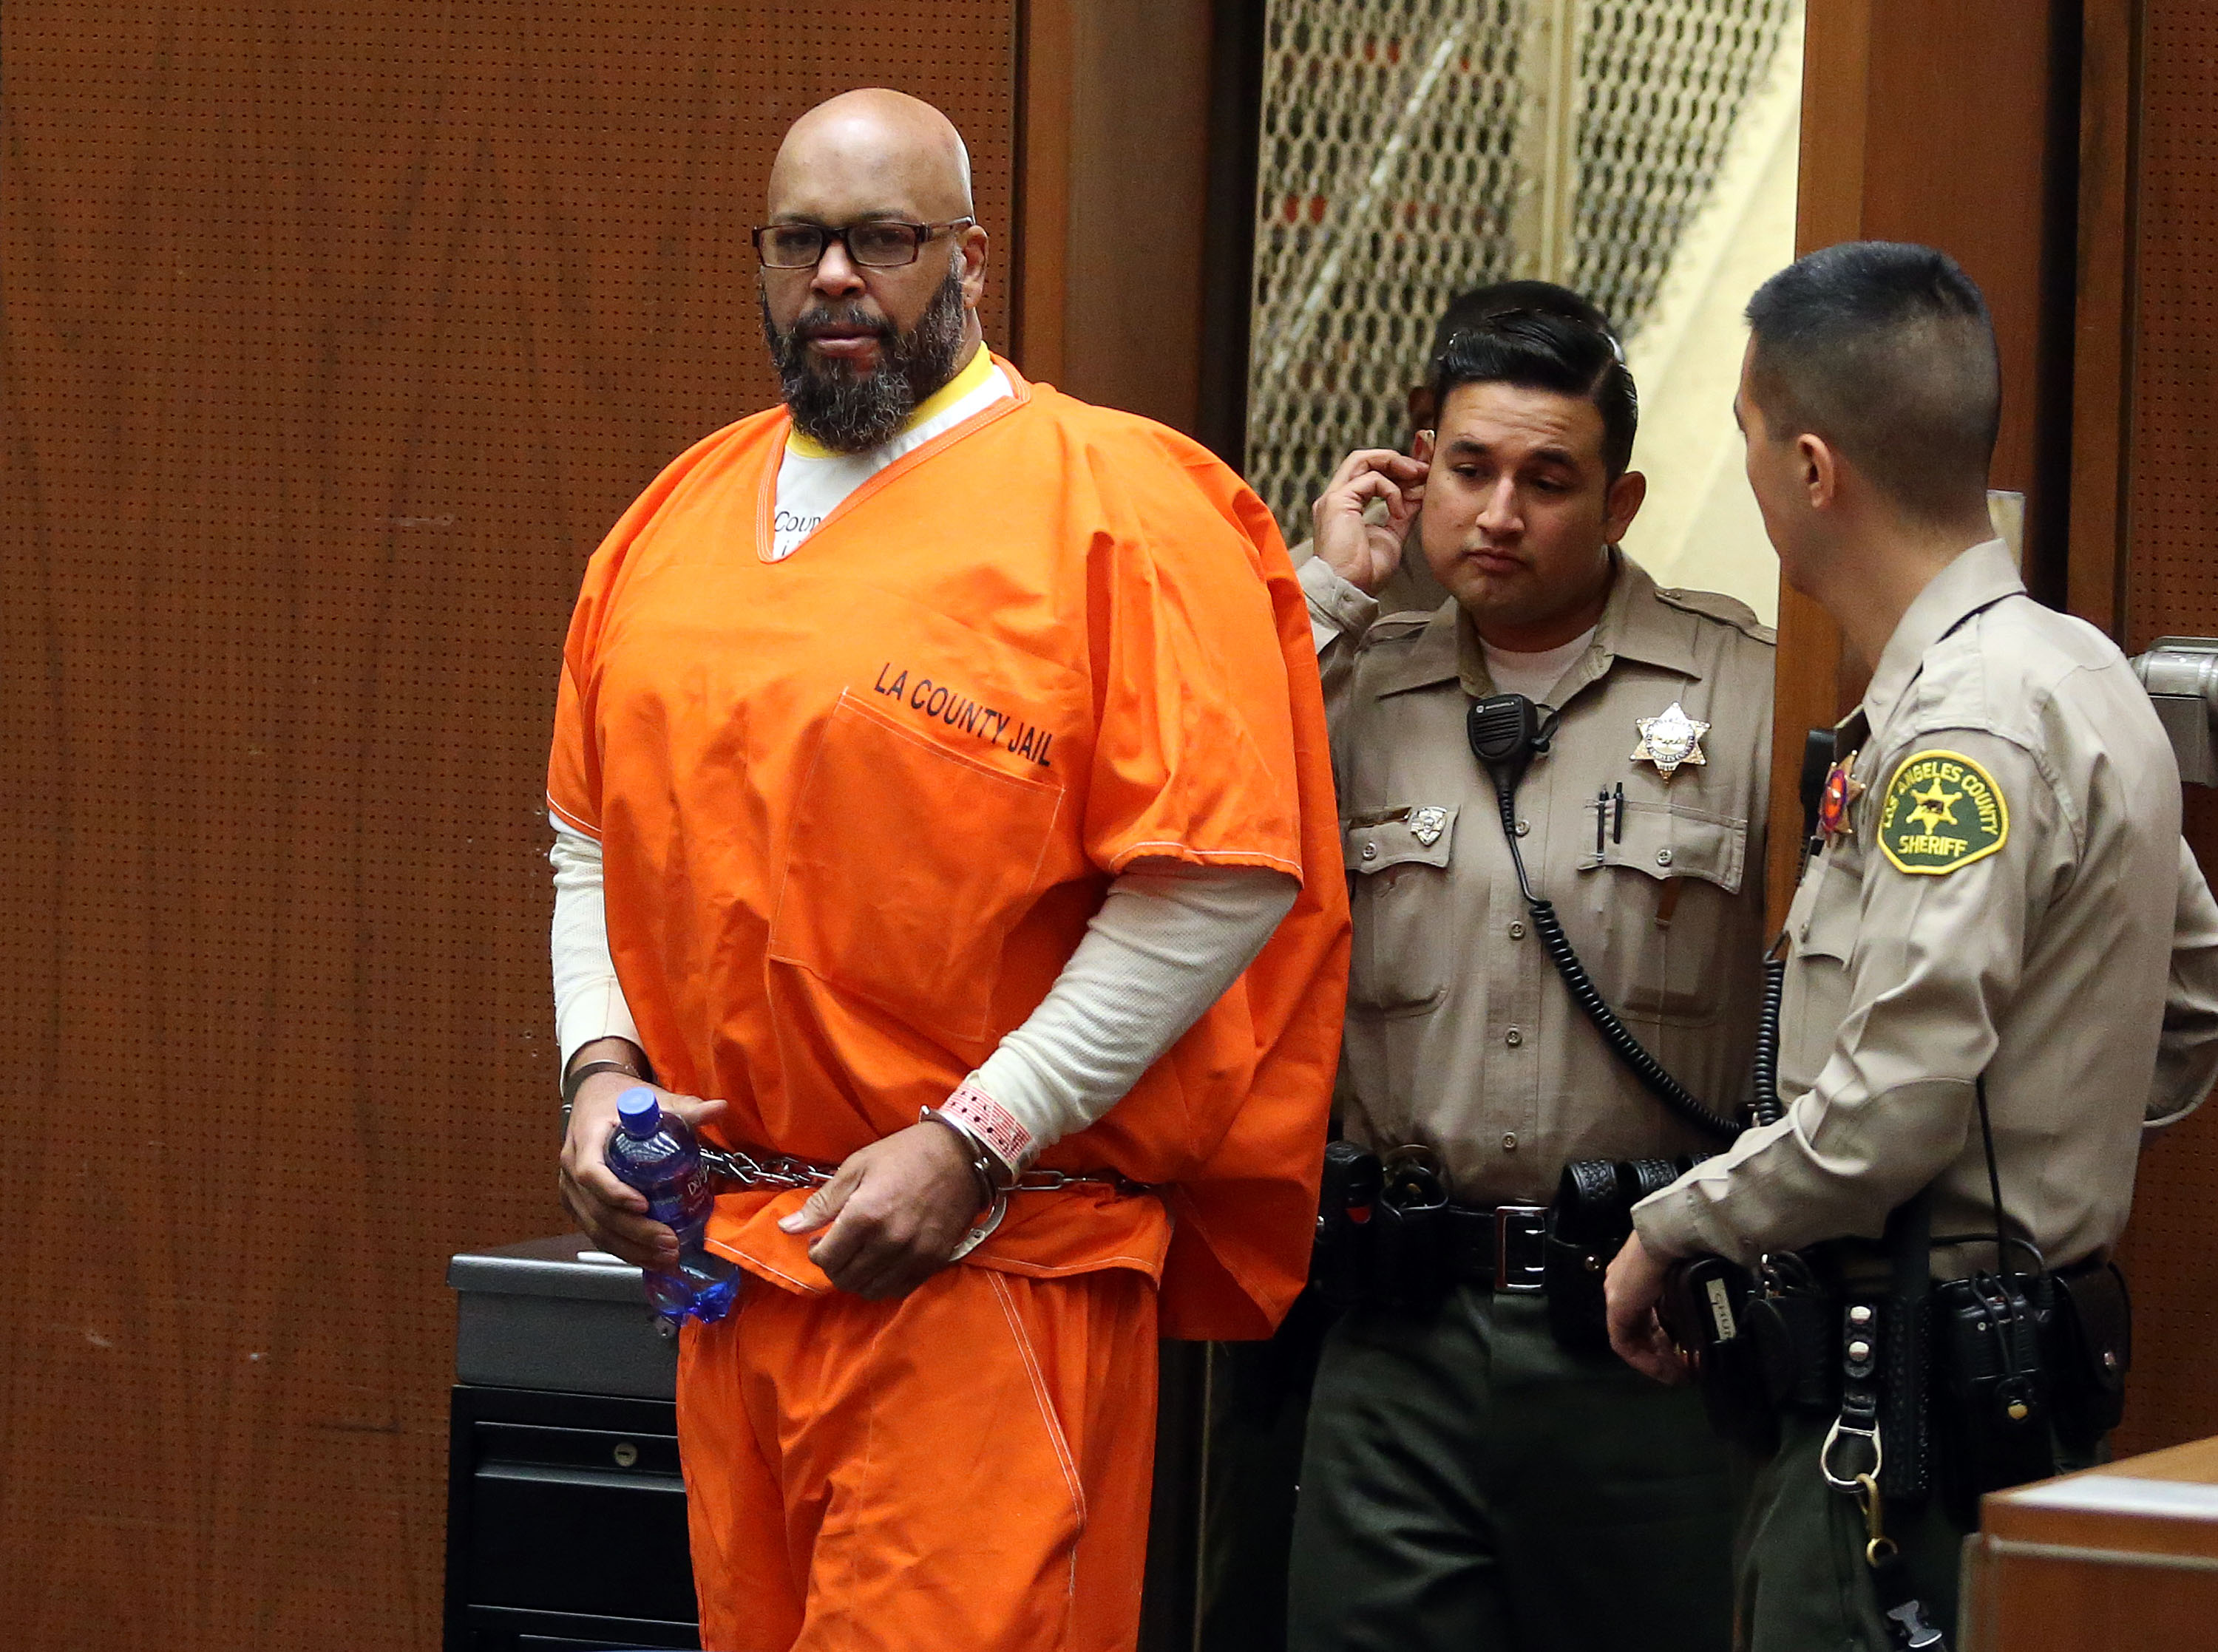 Marion 'Suge' Knight appears in Los Angeles court for a pretrial hearing at the Clara Shortridge Foltz Criminal Justice Center on January 21, 2016 in Los Angeles, California. Knight is charged with robbery and criminal threats after allegedly stealing a photographer's camera during an incident September 5, 2014 in Beverly Hills. (Photo credit: Getty Images)